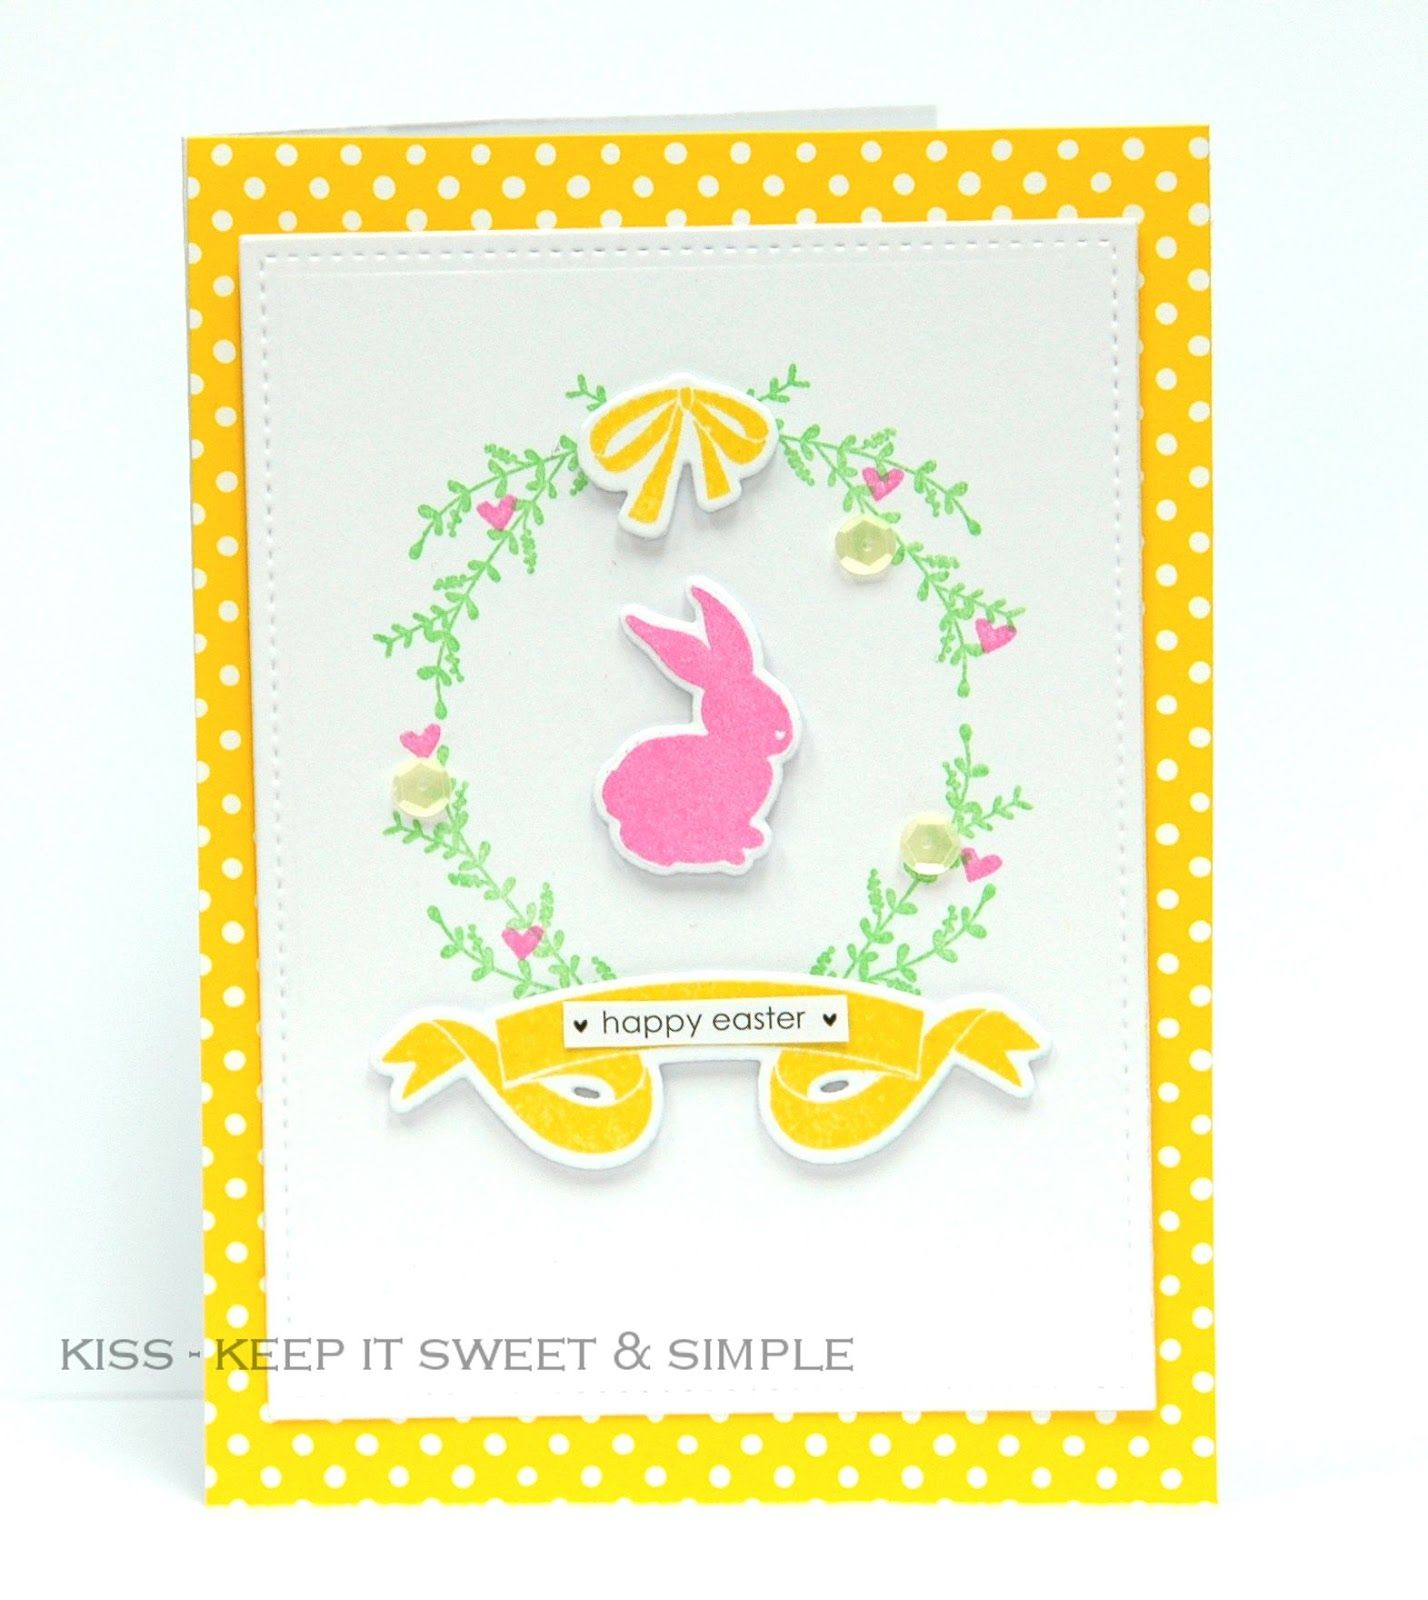 Kiss Keep It Sweet And Simple Easter Bunny Easter Ideas